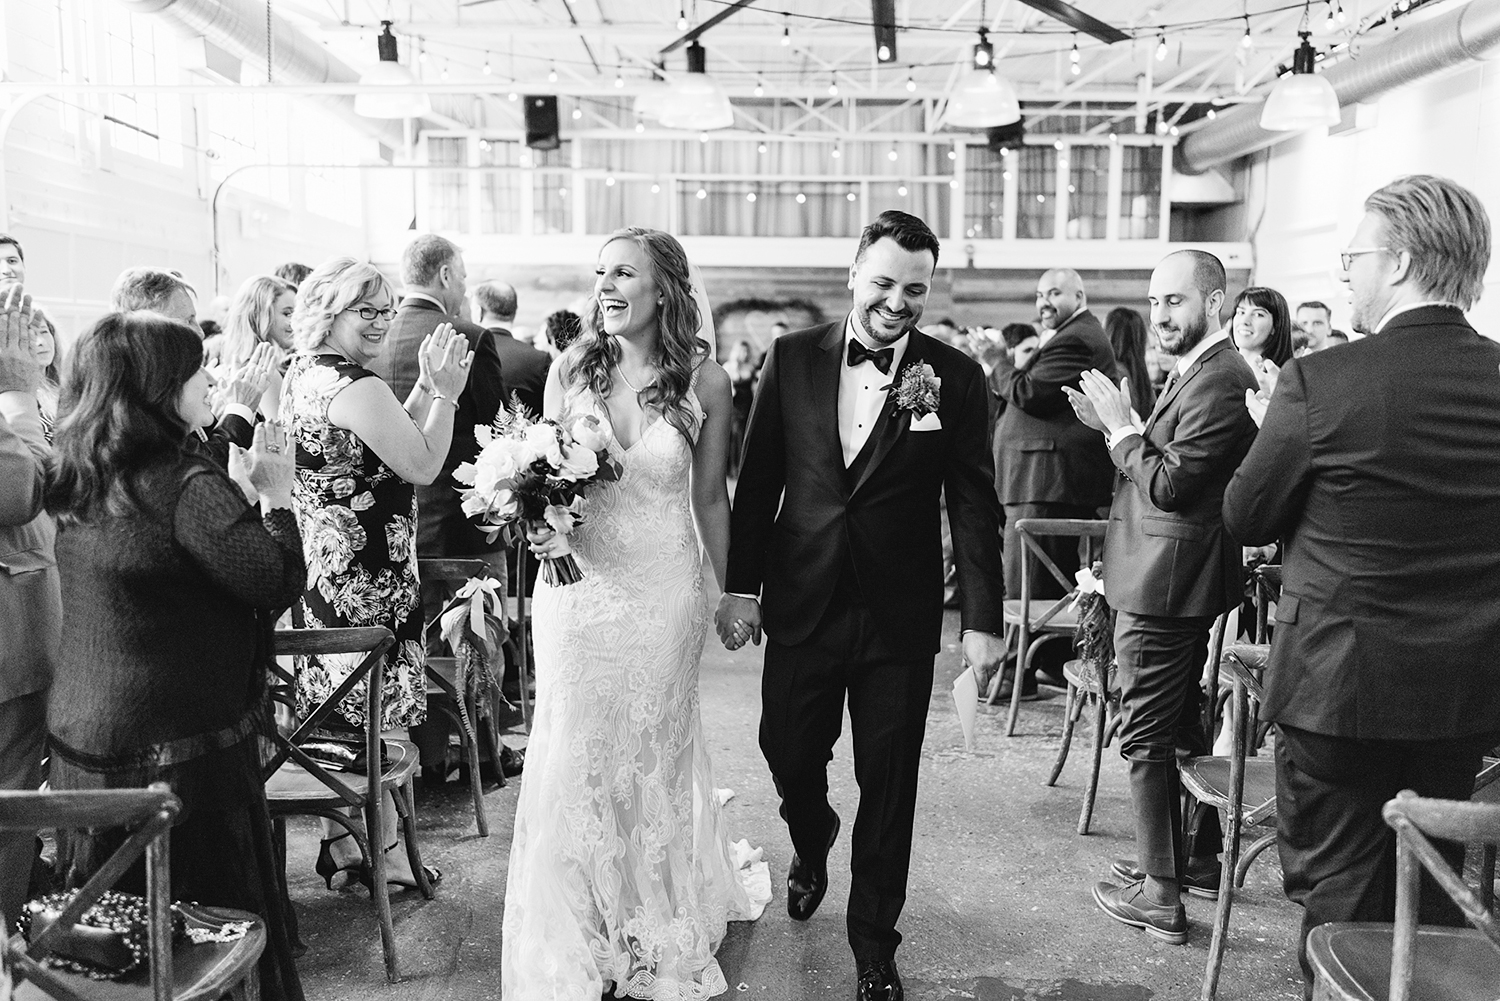 downtown-toronto-wedding-photographer-ryanne-hollies-photography-airship37-distillery-district-wedding-day-modern-minimalist-venues-in-toronto-ceremony-documentary-moments-bride-and-groom-just-married-recessional-epic-walking-down-aisle-bw.jpg